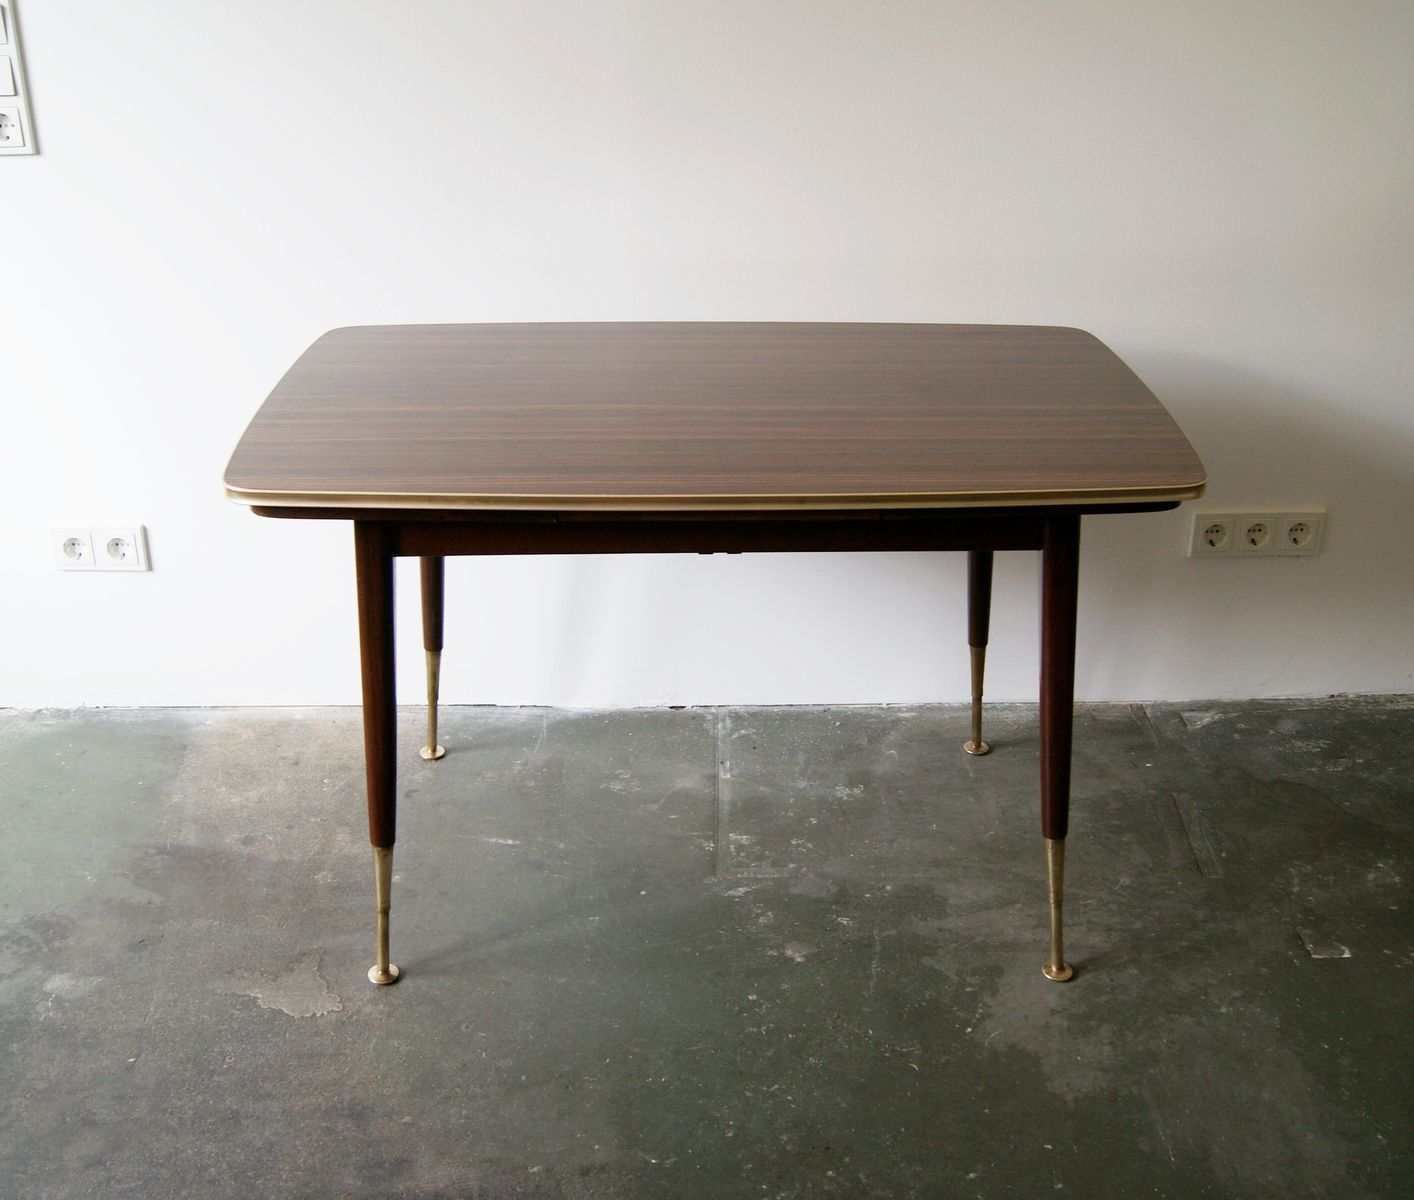 Ringgold Extendable Coffee Table With Storage: Mid-Century Extendable Coffee Table For Sale At Pamono